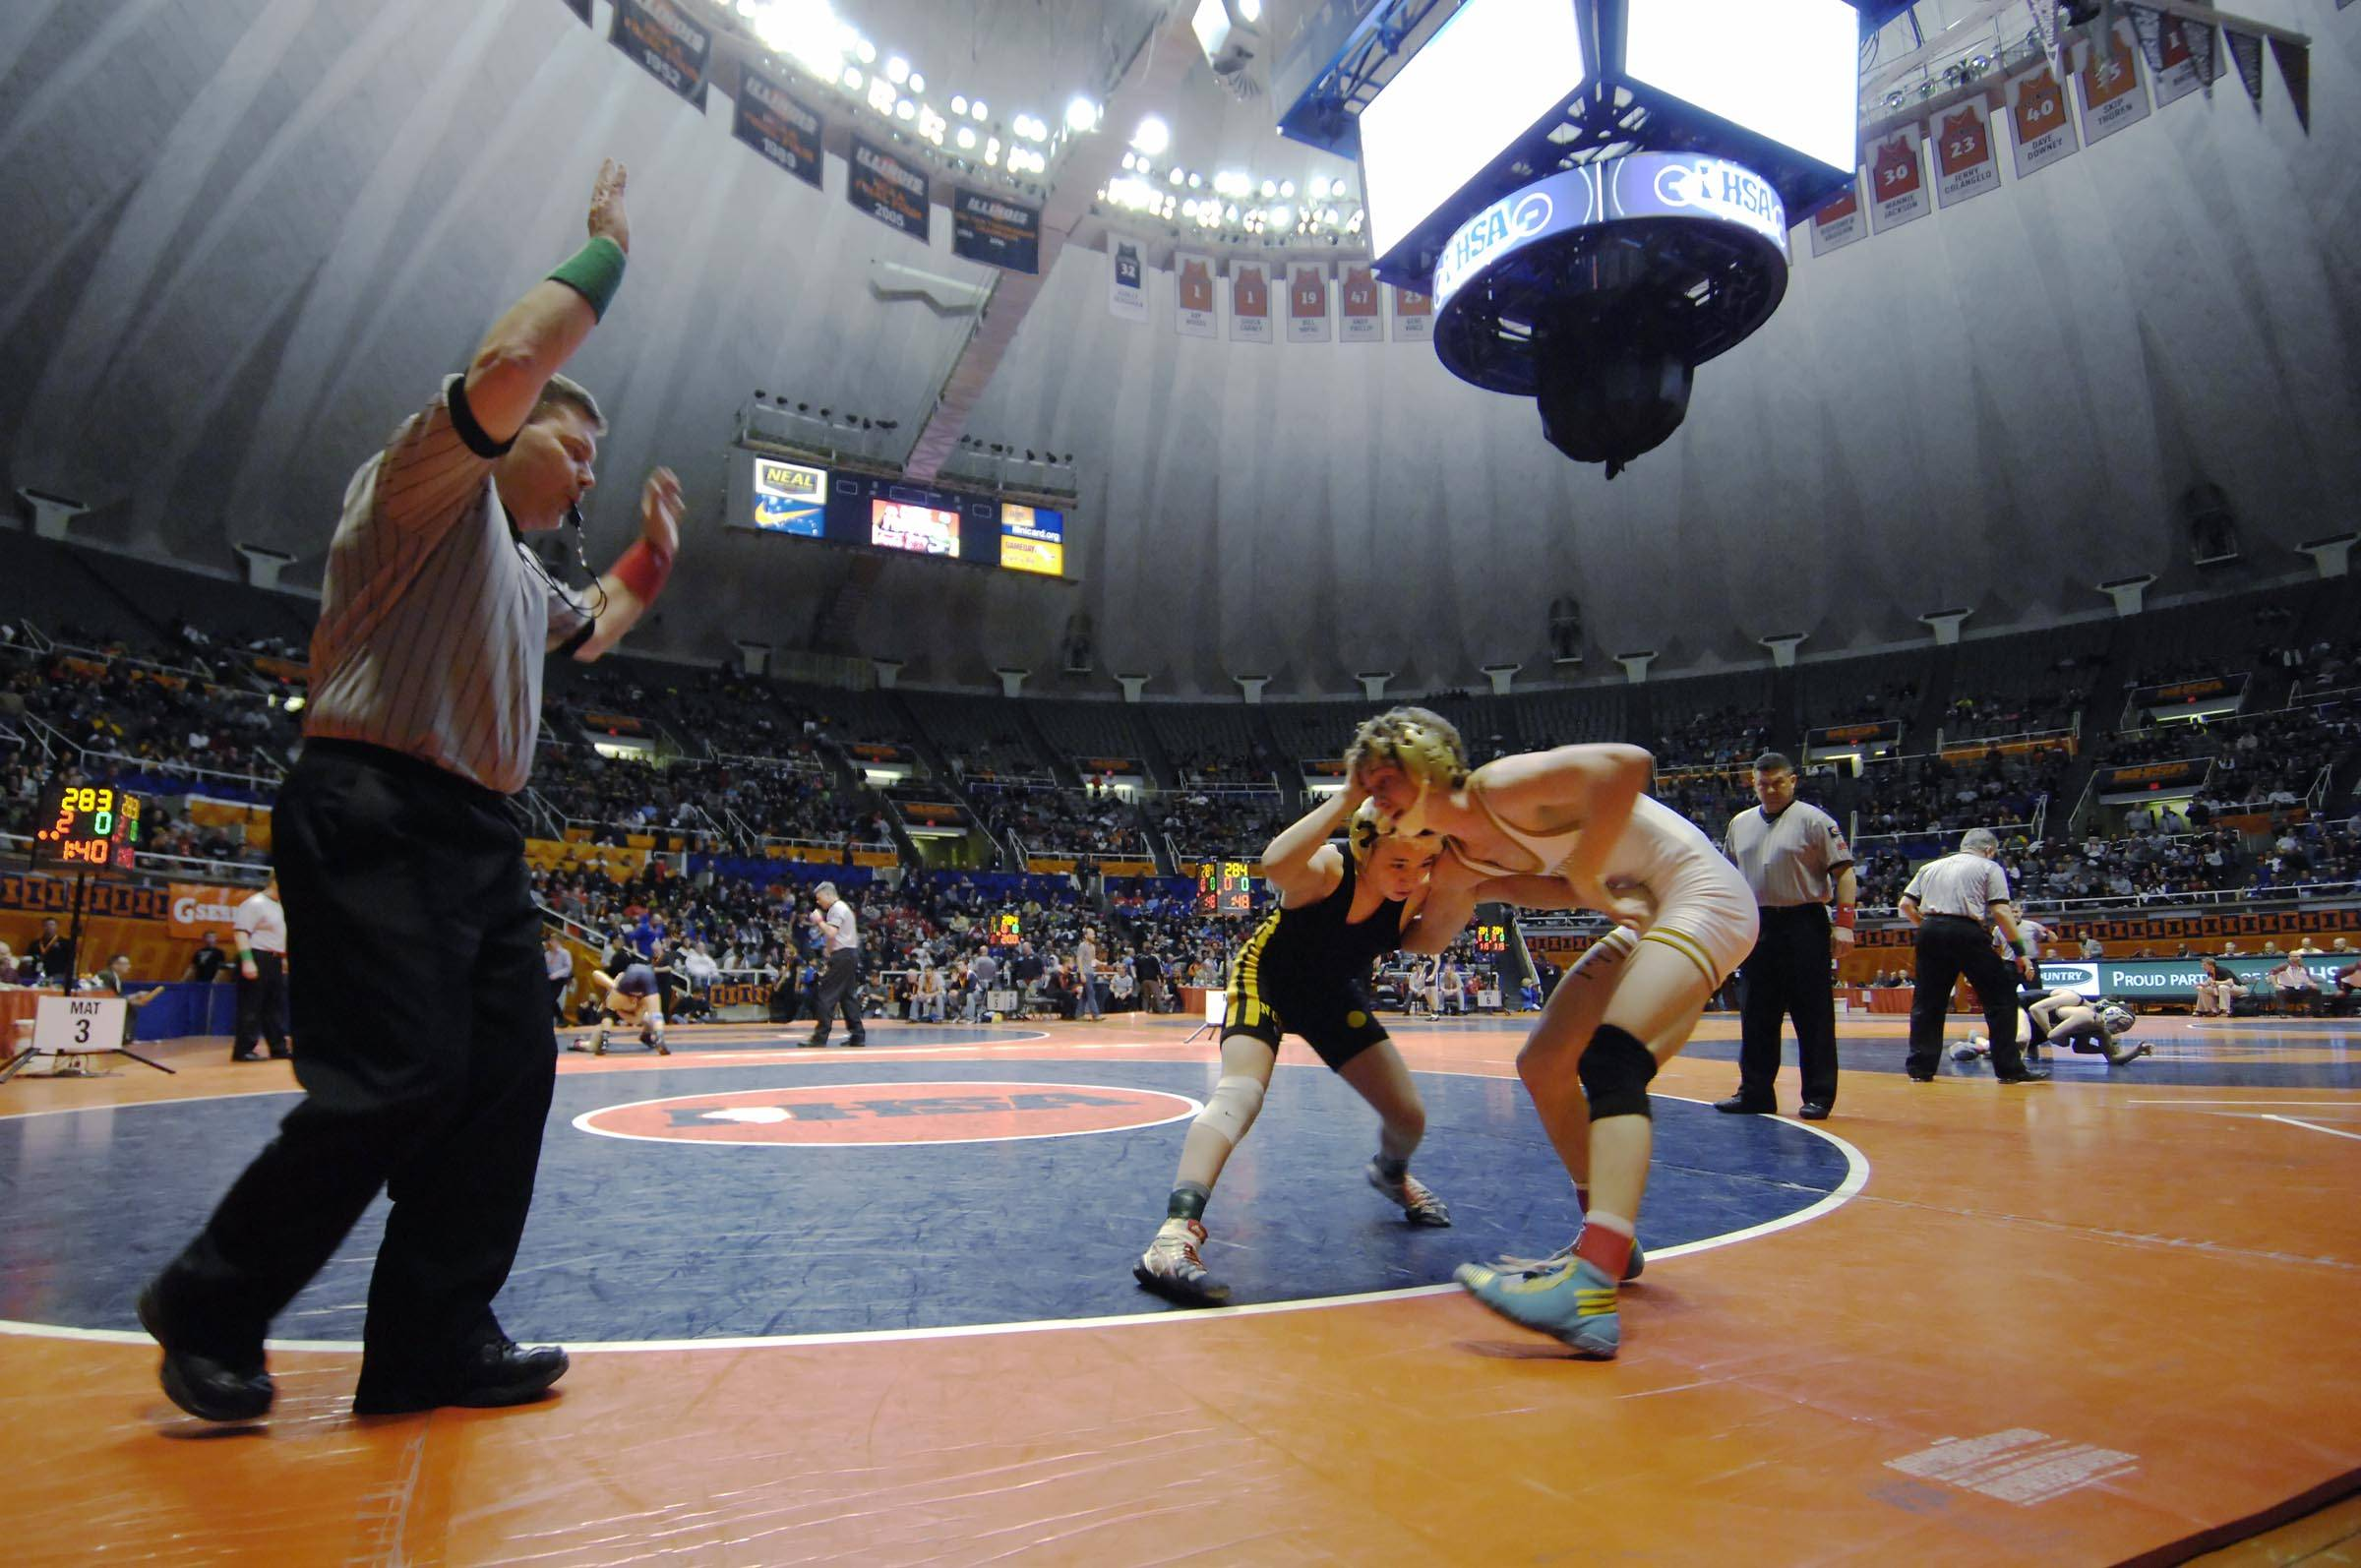 Austin Gomez of Glenbard North High School and Brian Rossi, right,  of Lockport High School compete Friday in the 113-pound weight class semifinals of the wrestling IHSA Class 3A state tournament at State Farm Center in Champaign.